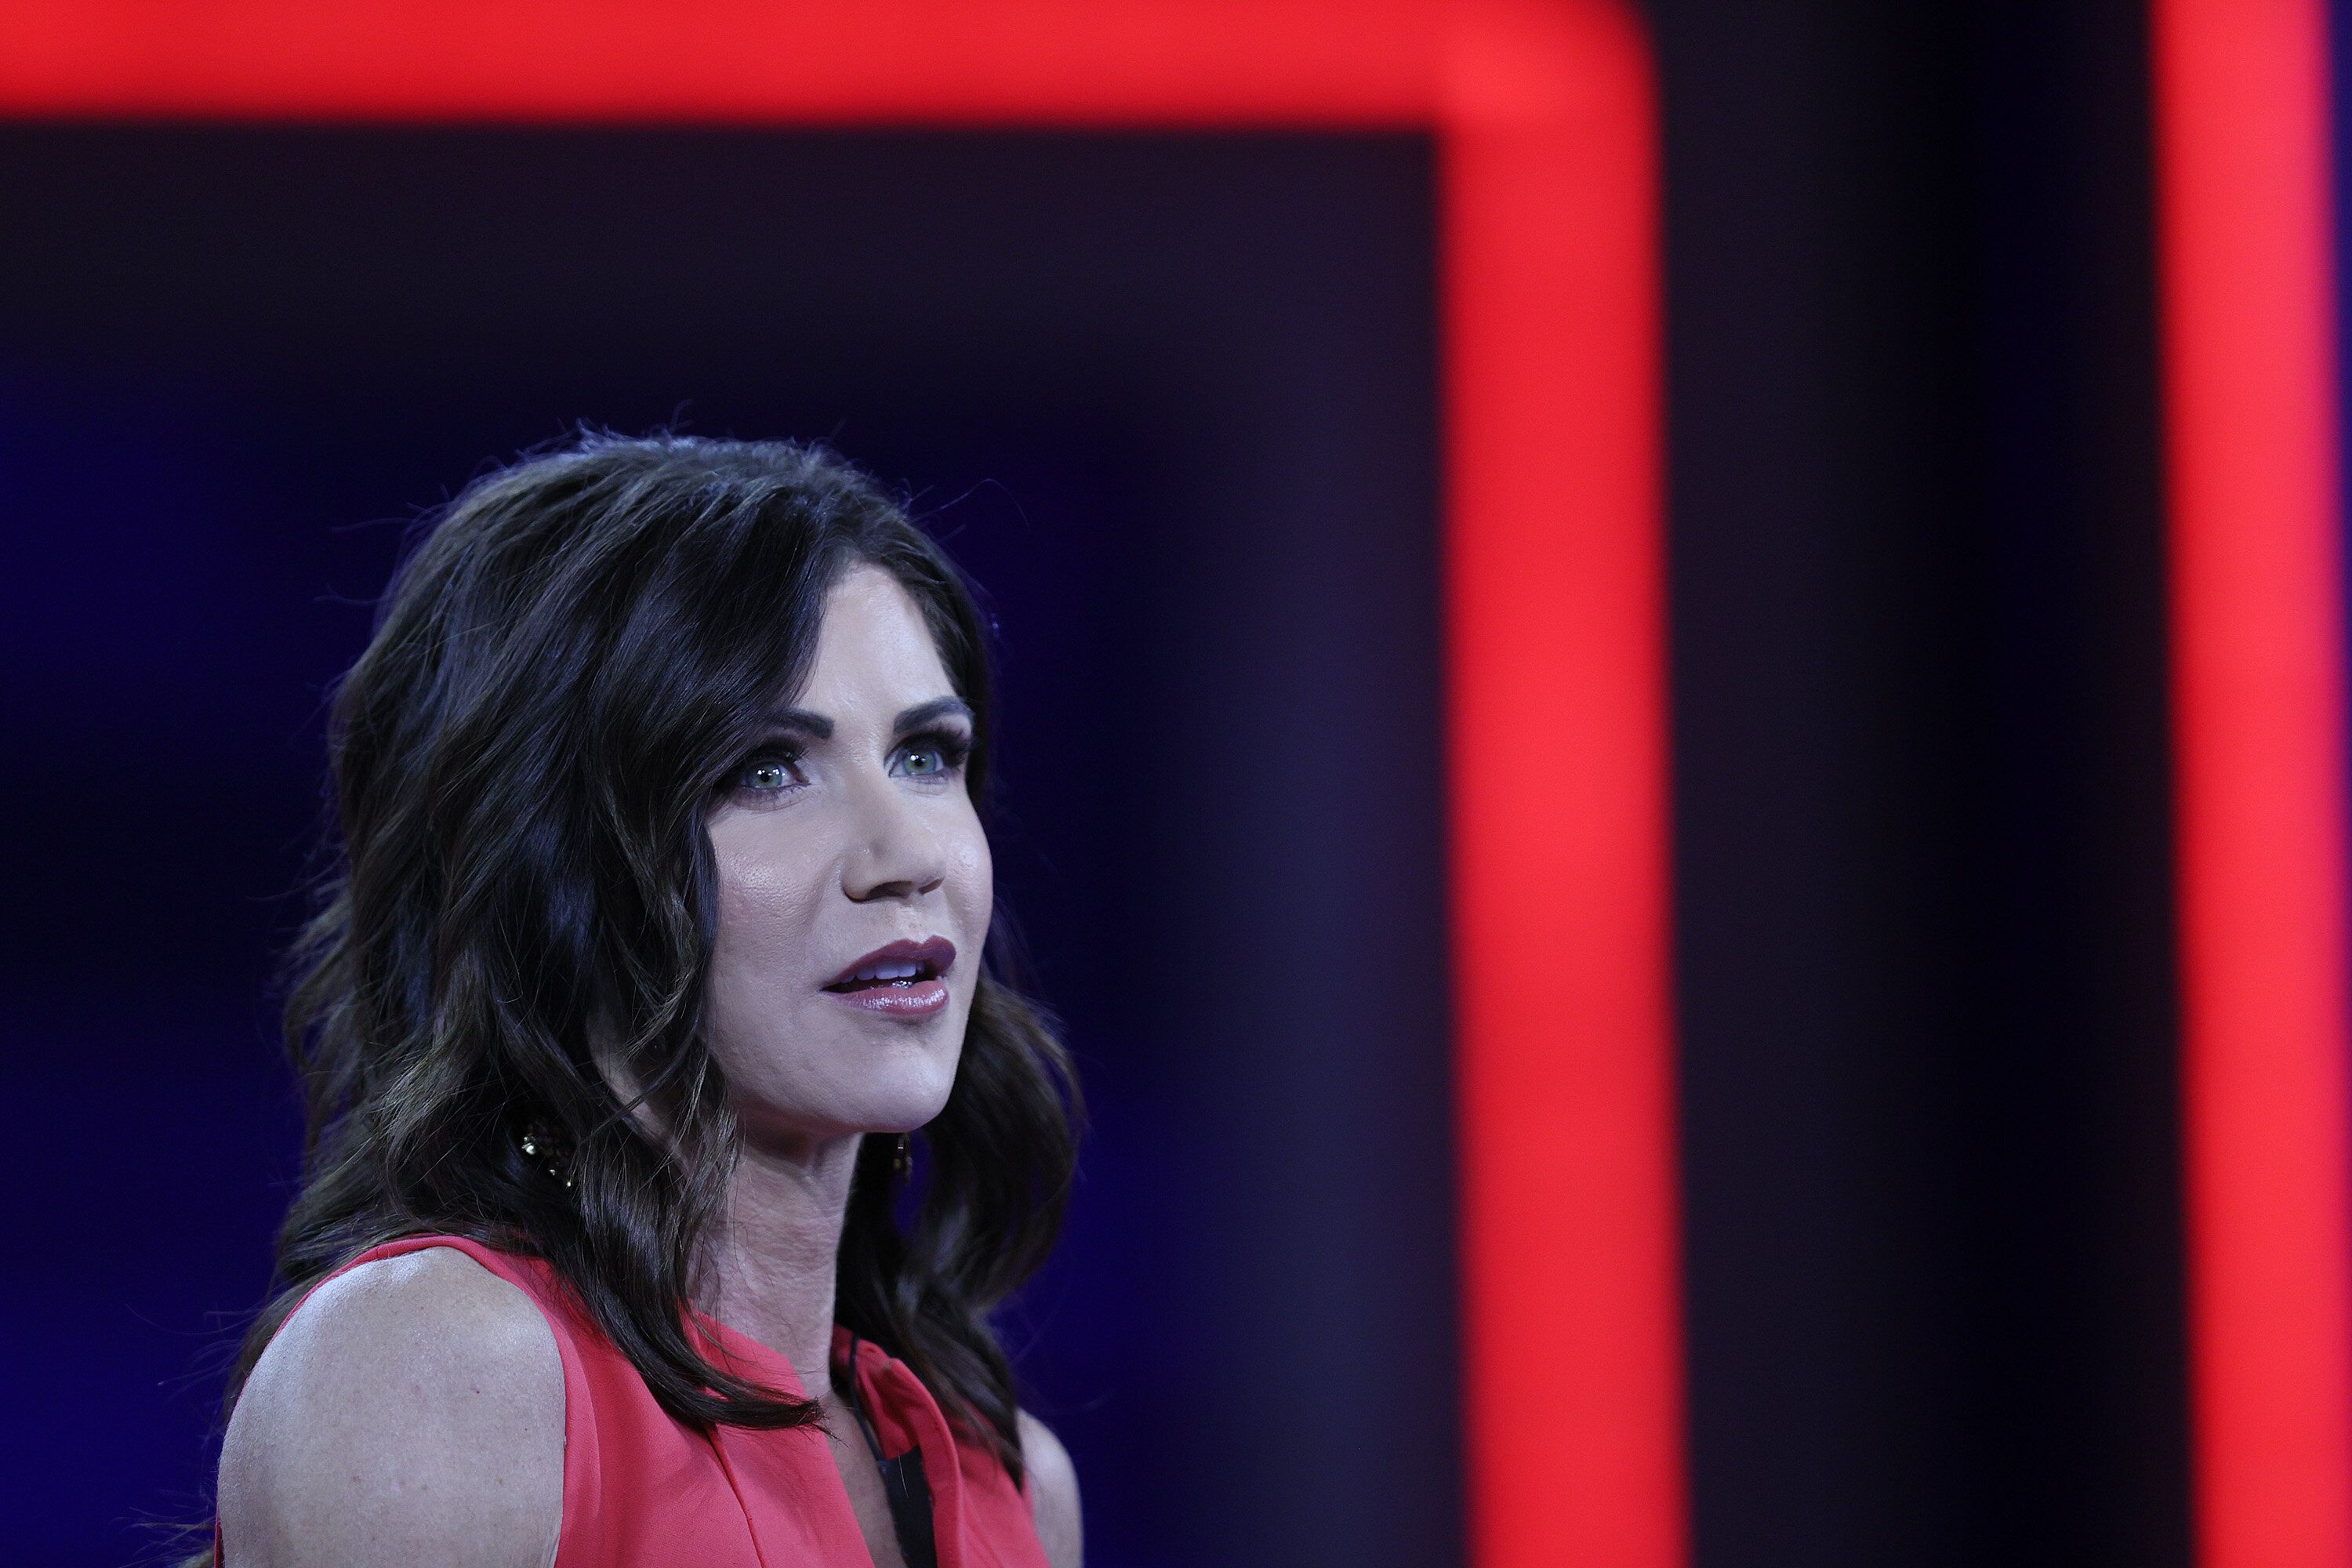 South Dakota Gov. Kristi Noem speaks at the Conservative Political Action Conference in February. (Photo by Joe Raedle/Getty